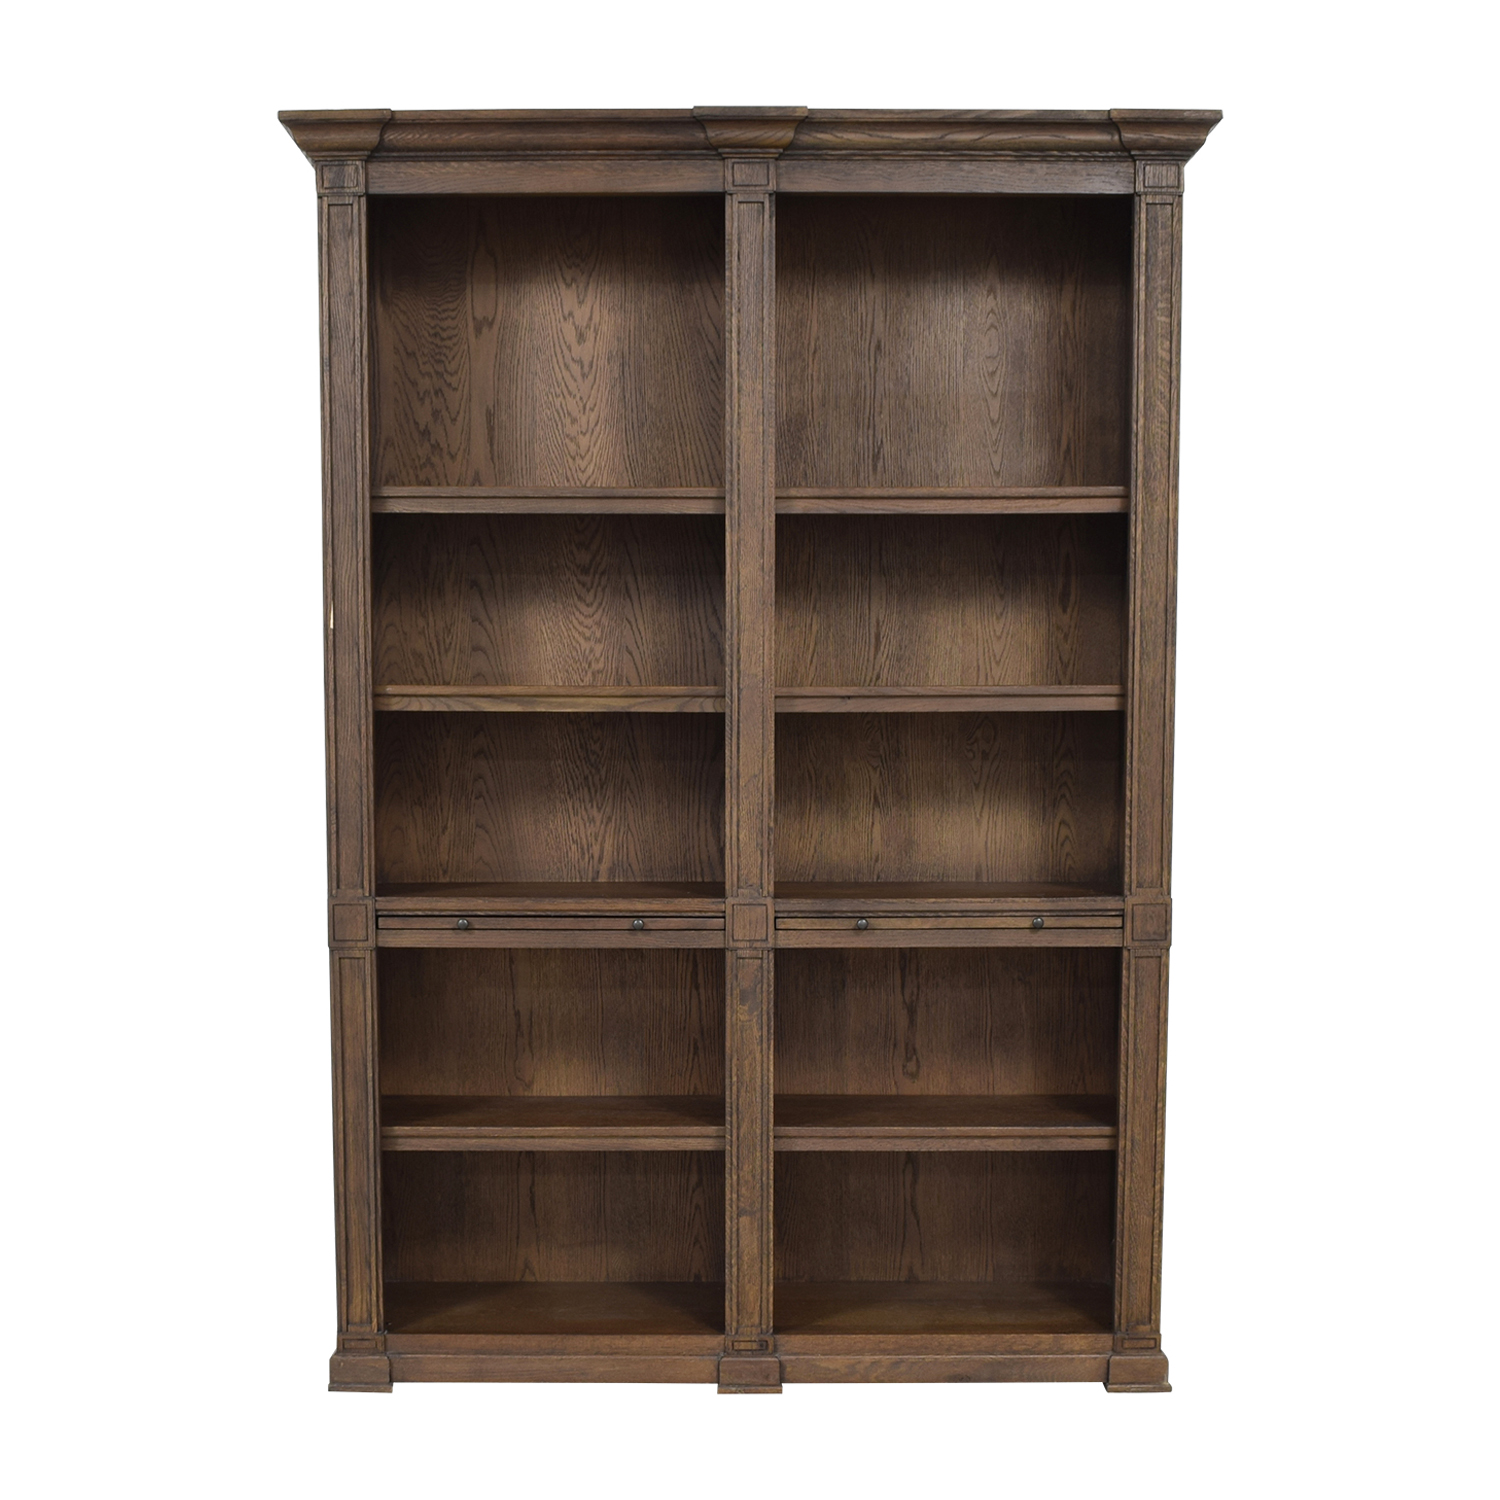 73 Off Restoration Hardware Restoration Hardware Wood Library Bookcase With Desk Storage